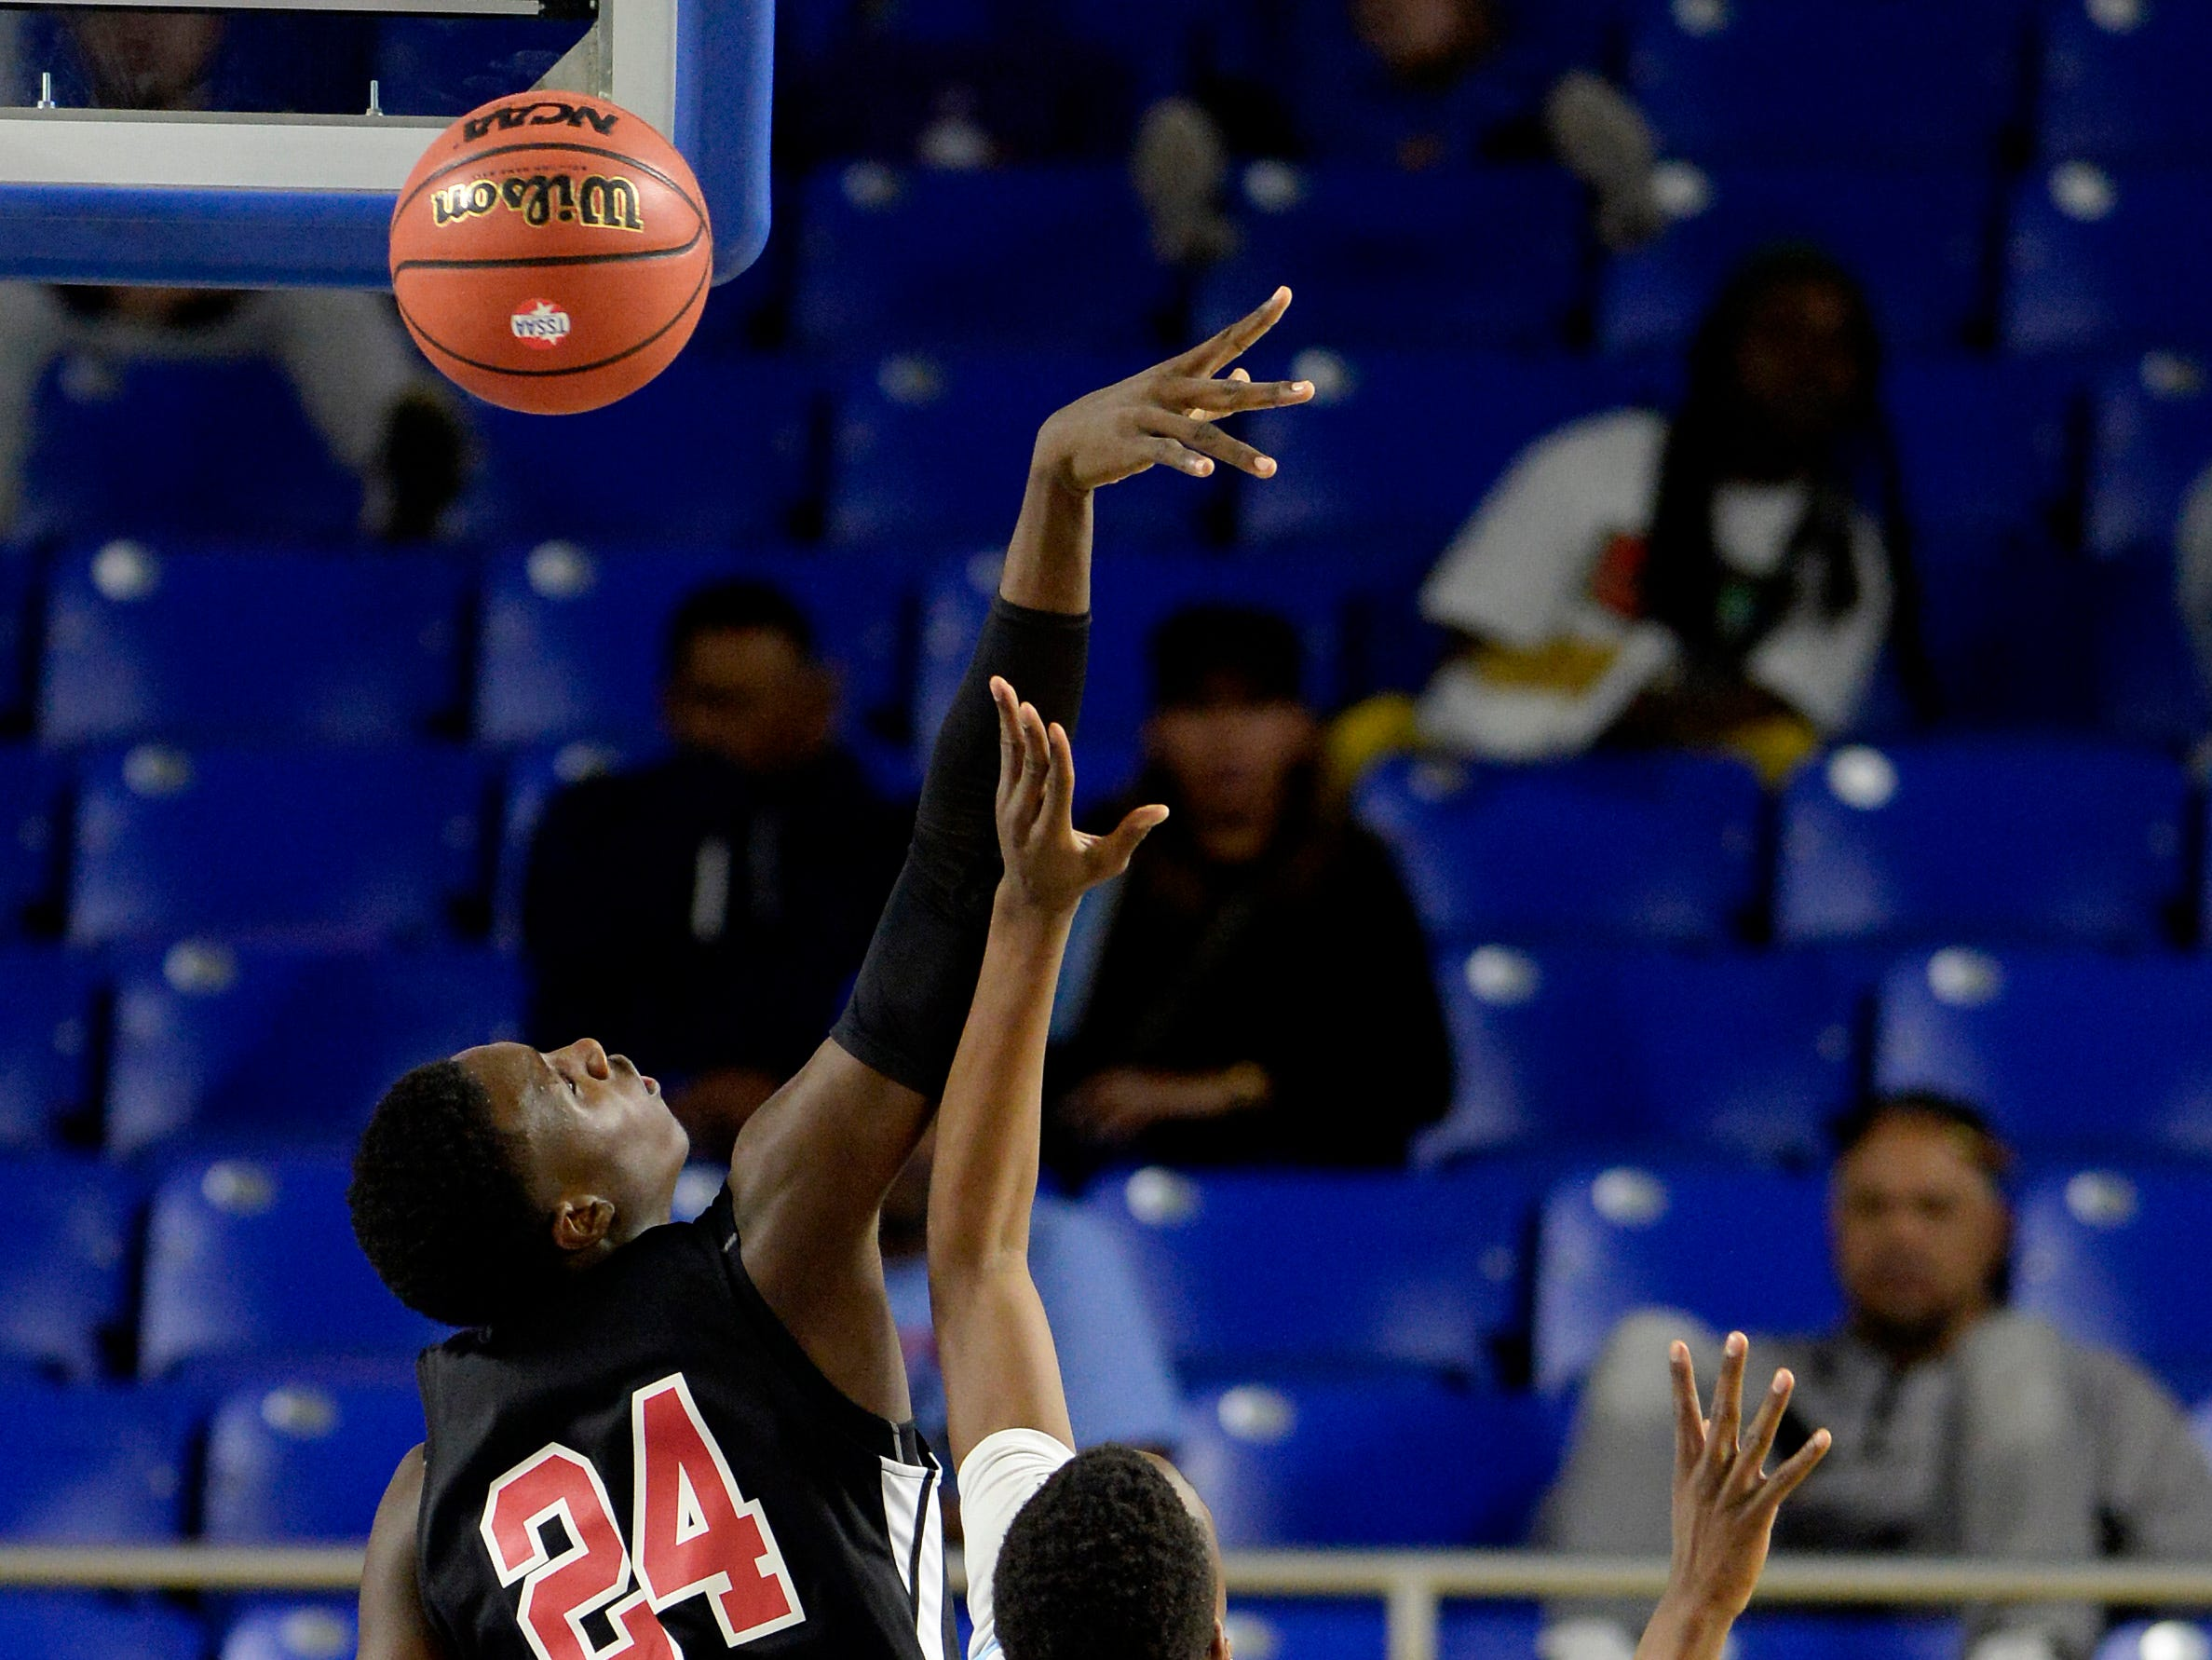 Pearl Cohn forward Tyrone Marshall (24) block a shot by Brainerd forward Laderron Freeman (4) during the first half of an Class AA boys' state basketball quarterfinal game Wednesday, March 13, 2019, in Murfreesboro, Tenn.